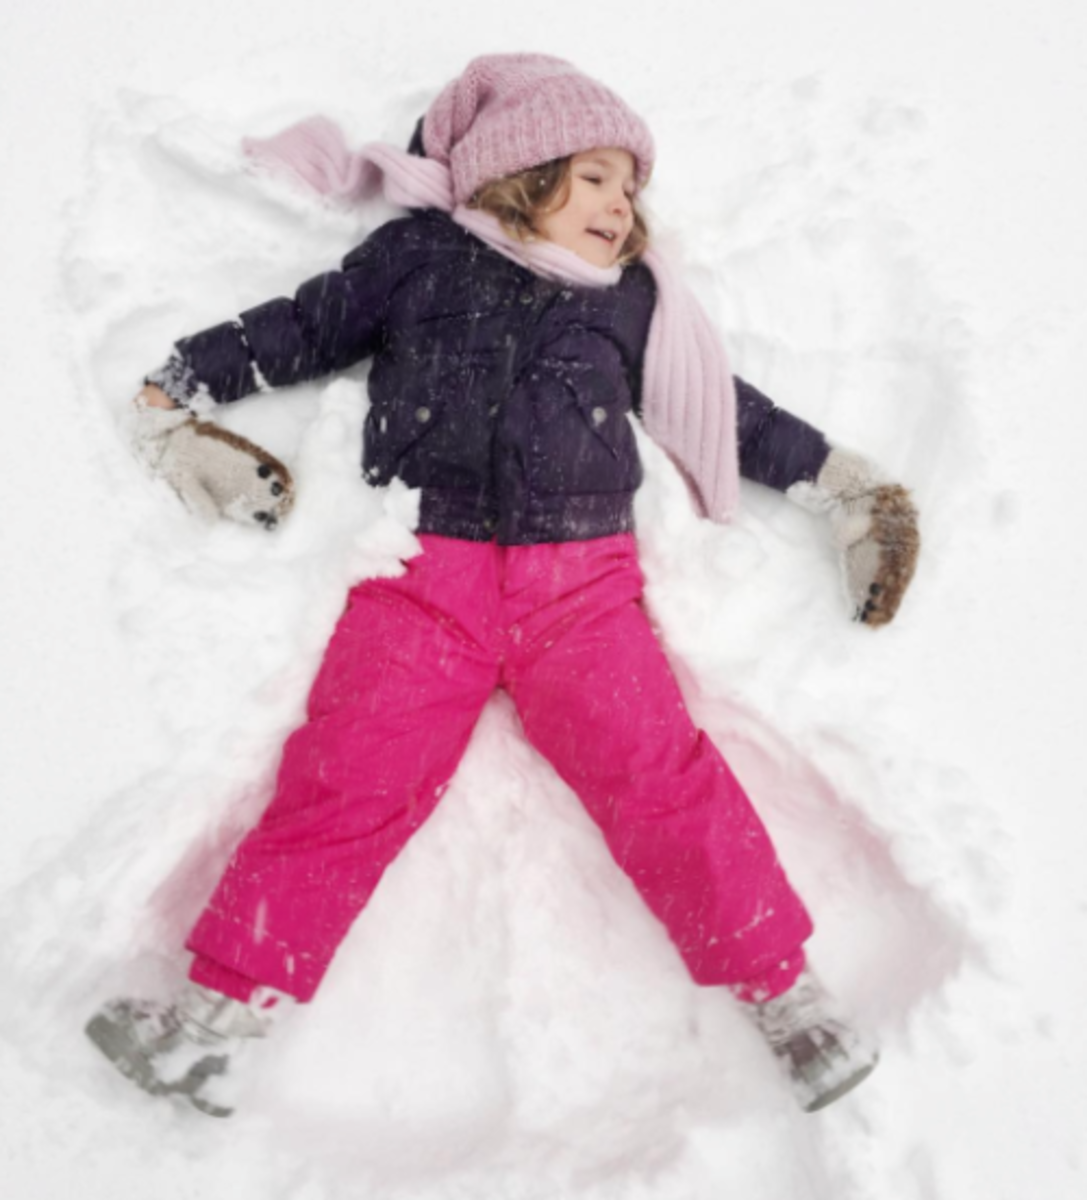 The Cutest Kid Pics from SNOWMAGEDDON 2016 @strollerinthecity